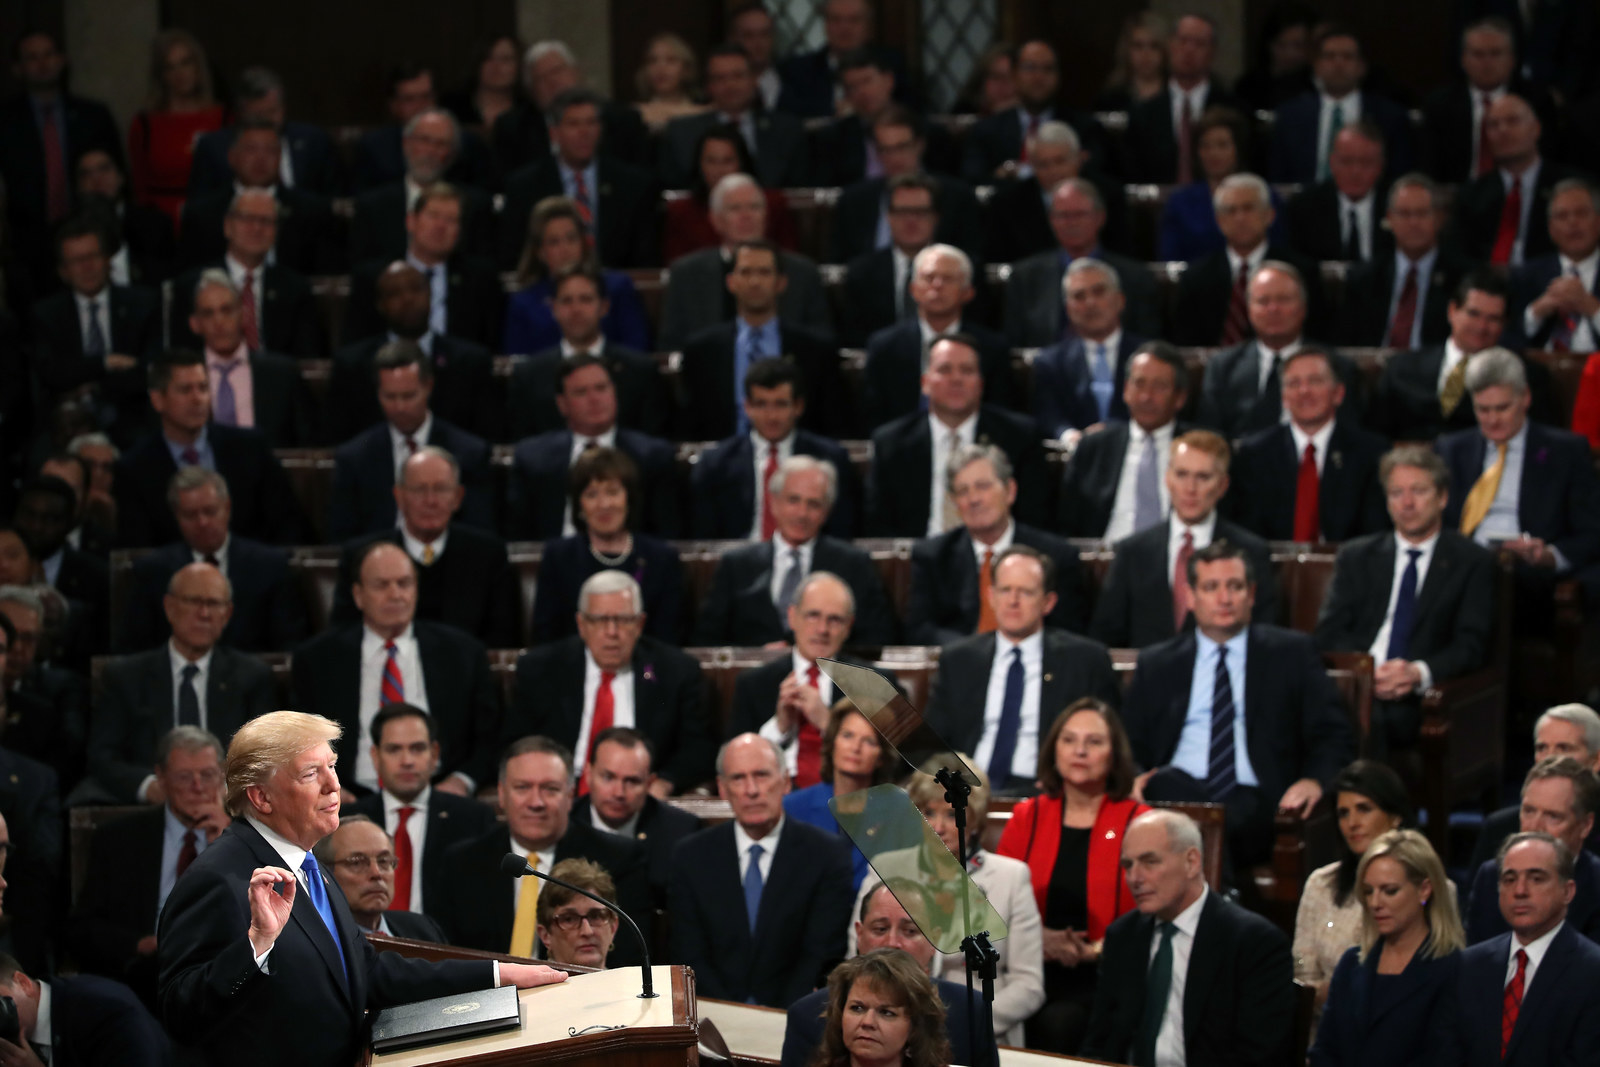 President Trump delivers his first State of the Union address on Jan. 30.